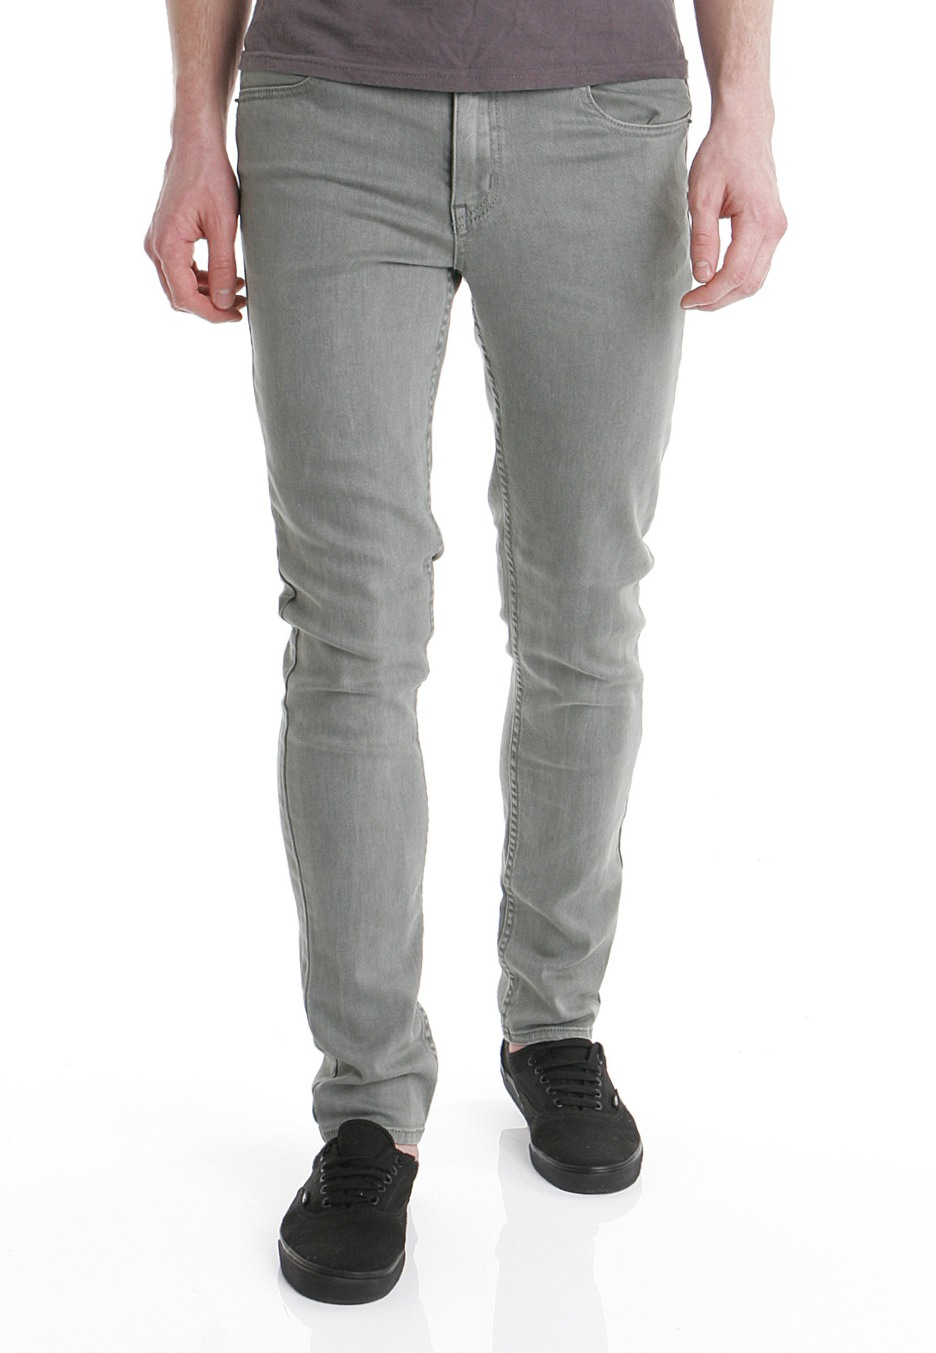 Cheap Monday - Tight Slate Grey - Jeans - Impericon.com Worldwide